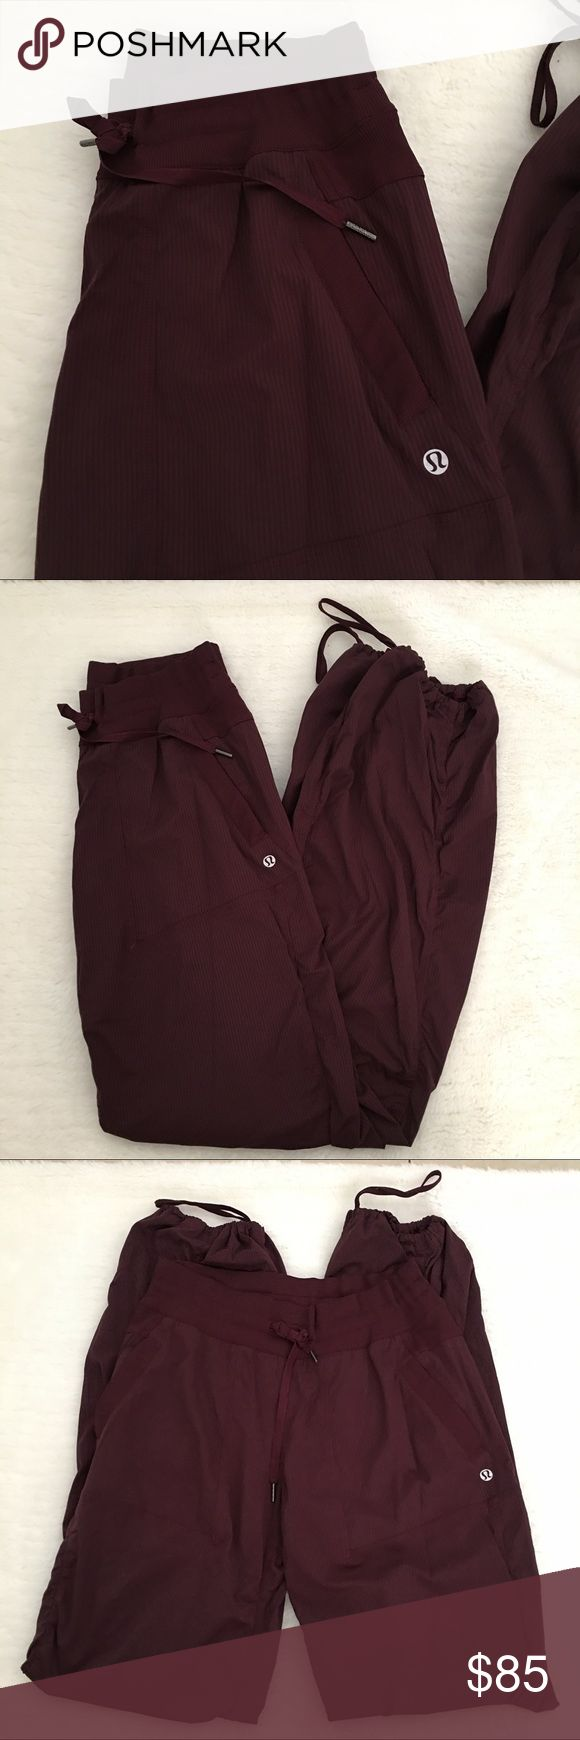 """Lululemon Burgundy Studio Pants size 8 Preowned authentic Lululemon Burgundy Studio Pants size 8. Inseam is 33"""" inches. Rise is 10"""" inches. Lightly worn. Side pockets. Please look at pictures for better reference. Thank you for looking and Happy shopping!!! lululemon athletica Pants"""